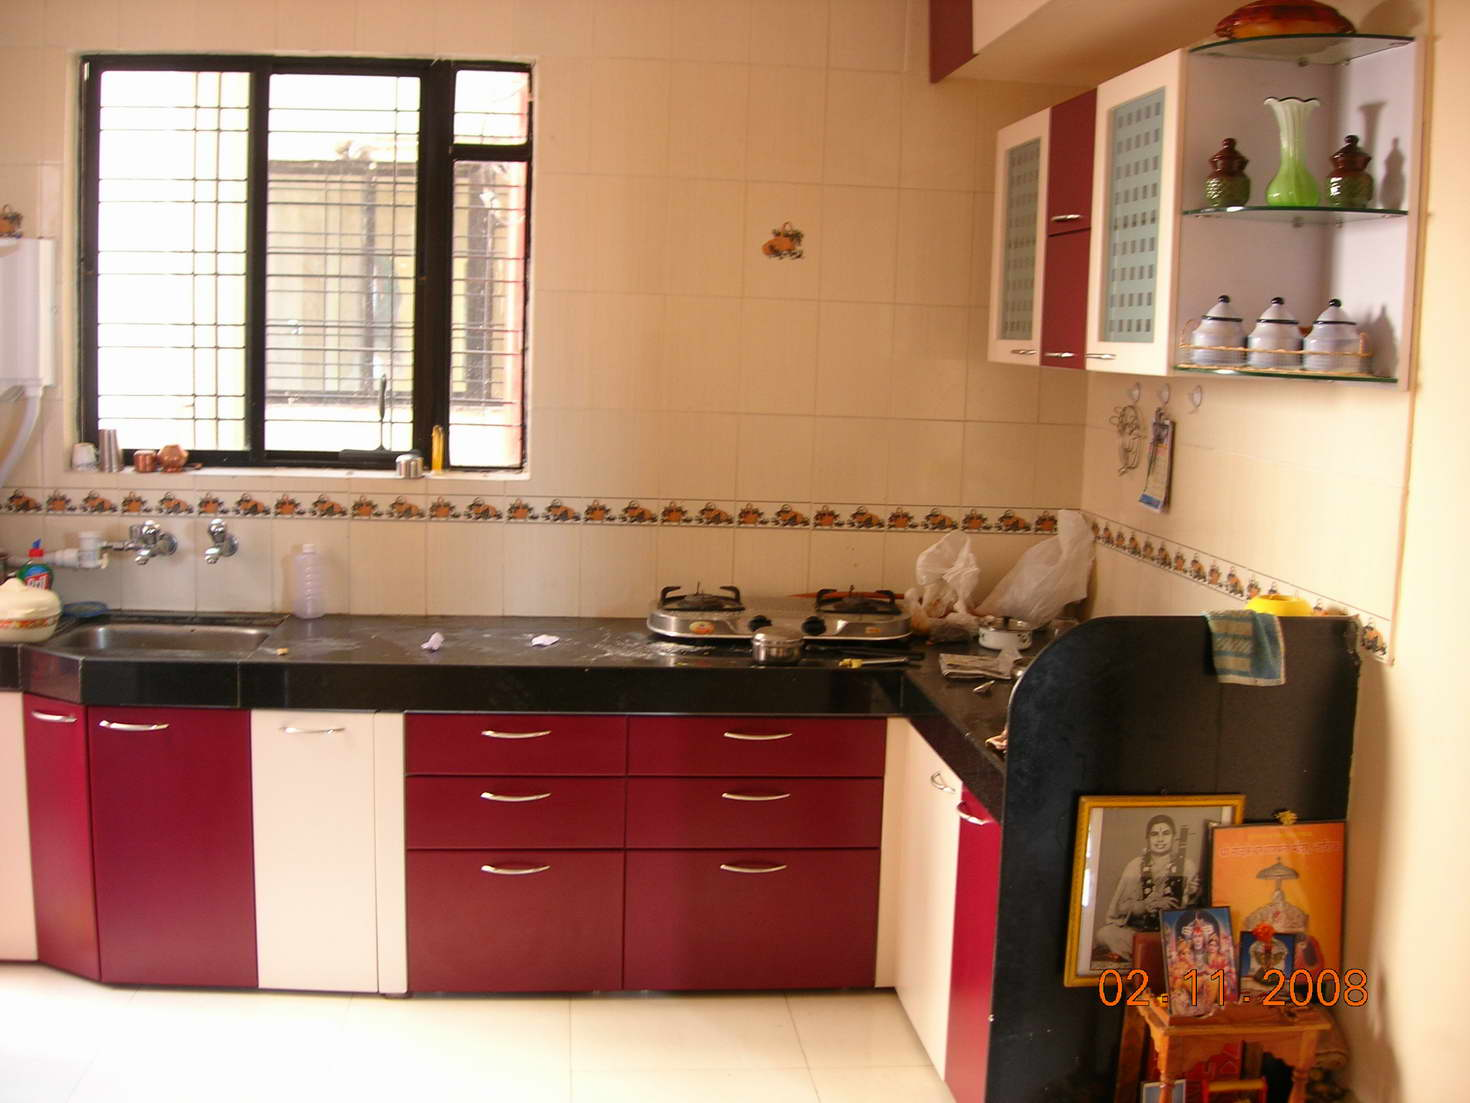 aditya kitchen trolley designs images